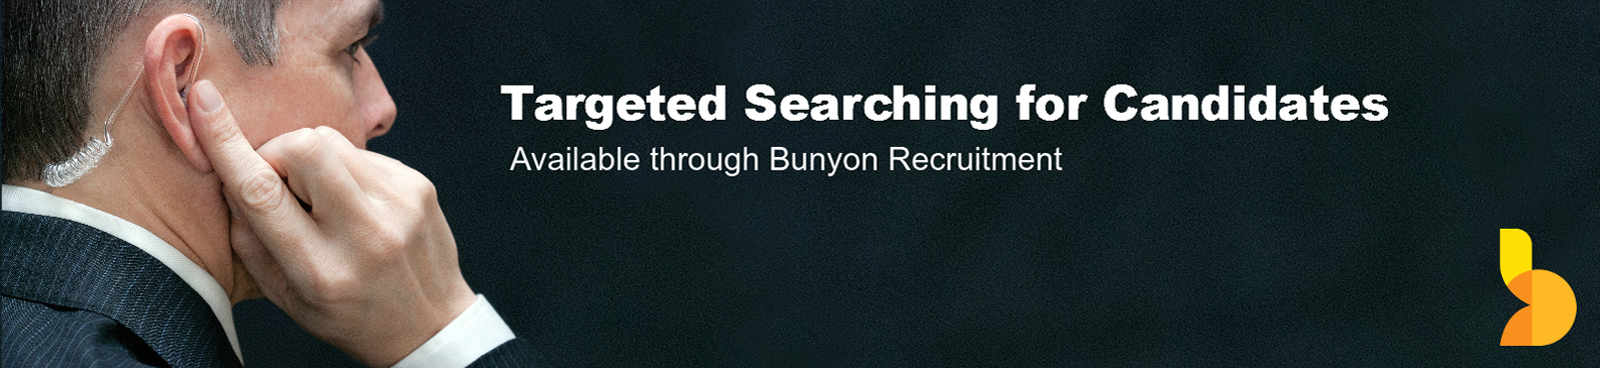 targeted-searching